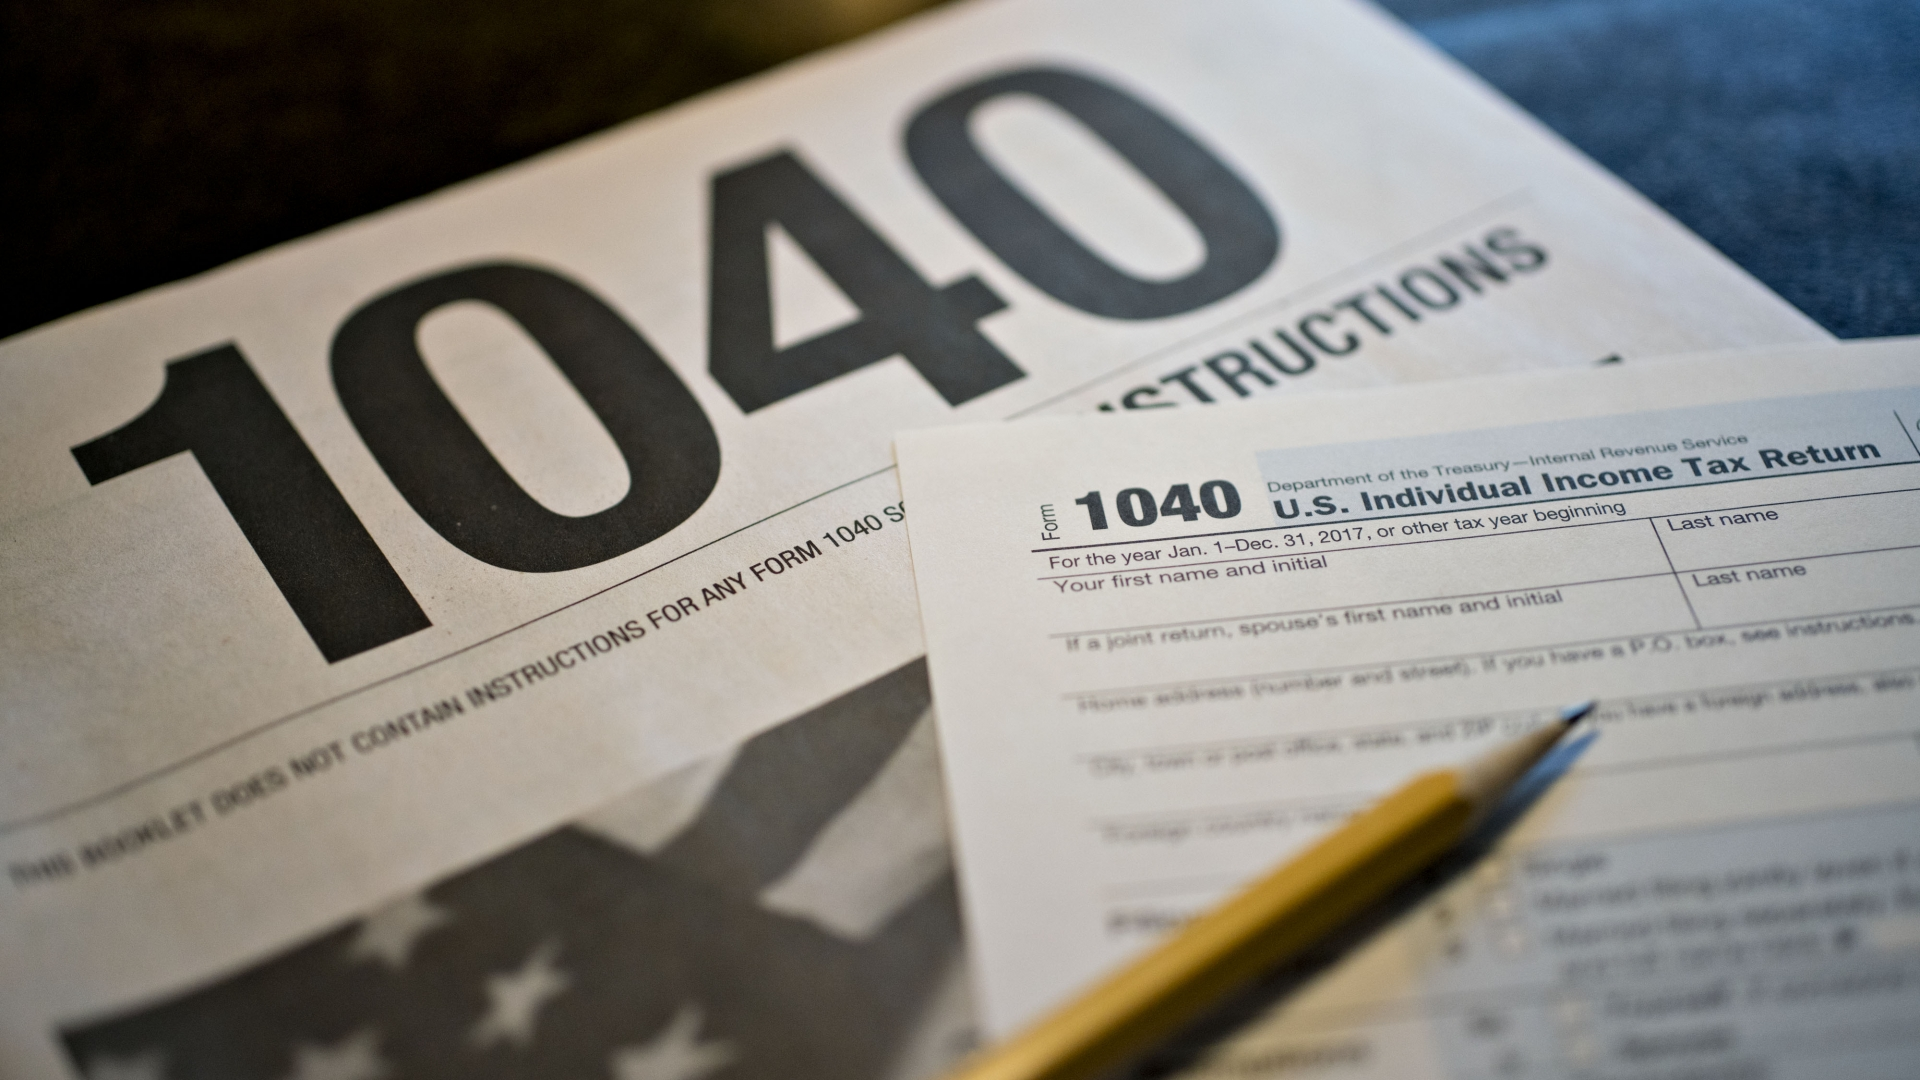 U.S. Department of the Treasury Internal Revenue Service (IRS) 1040 Individual Income Tax forms for the 2017 tax year. (Credit: Daniel Acker/Bloomberg via Getty Images)